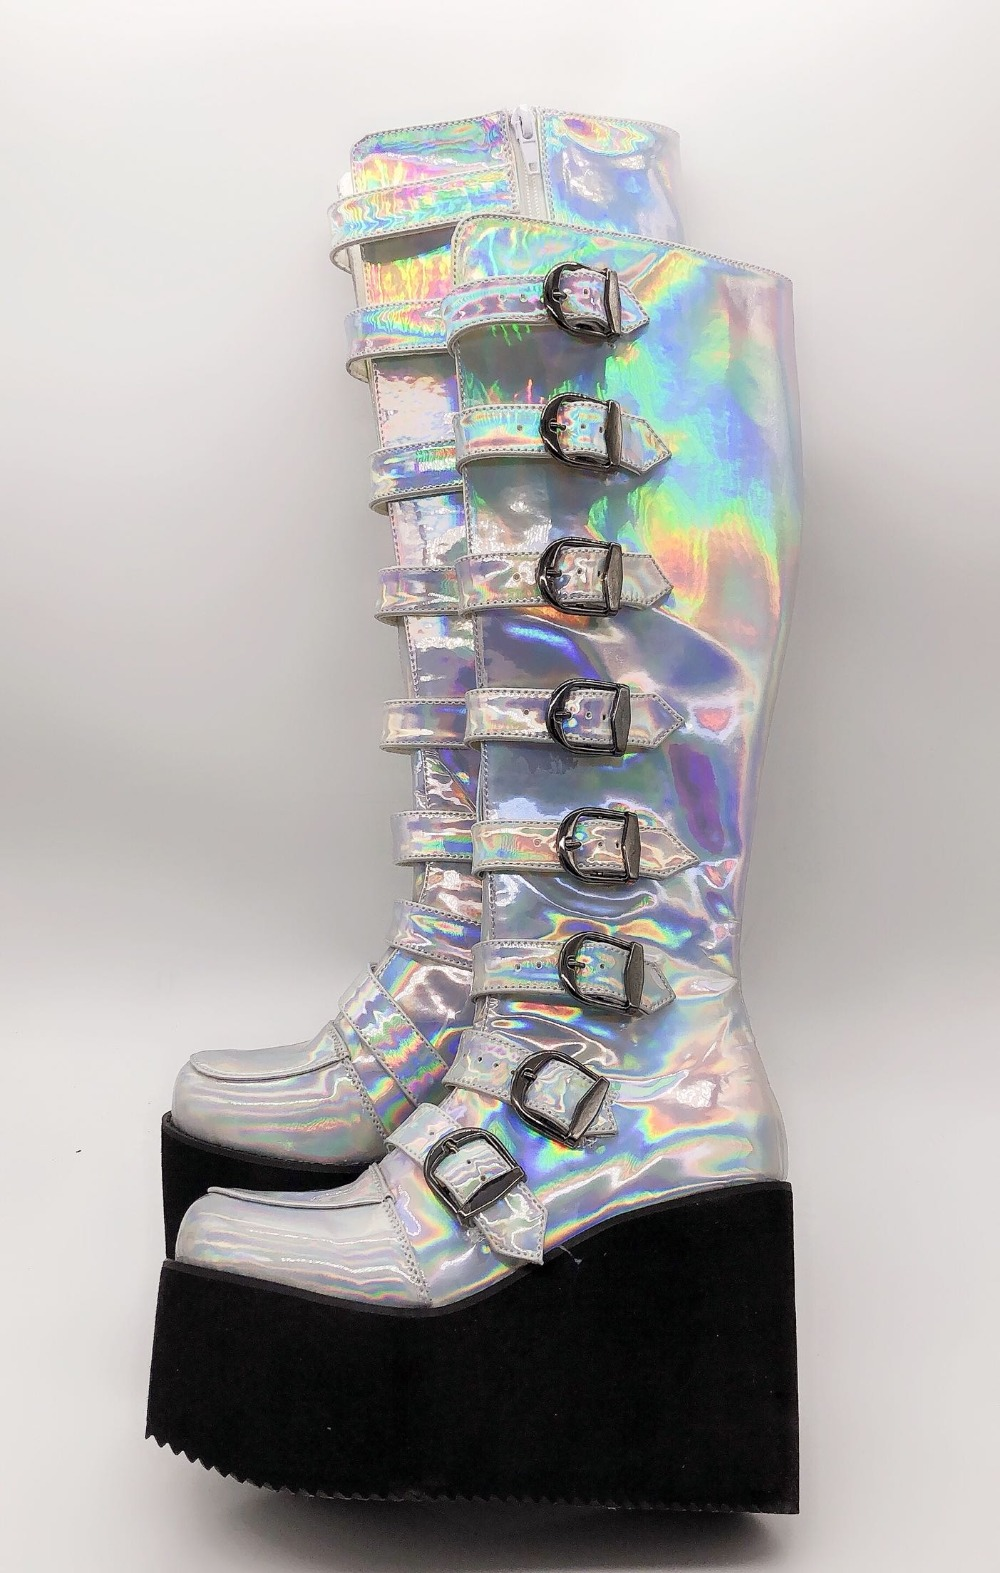 Colorful-High-Platform-Knee-High-Boots-Lolita-Cosplay-Show-Buckle-Strape-Lace-up-Thigh-Boots-Custom-Exclusive-4